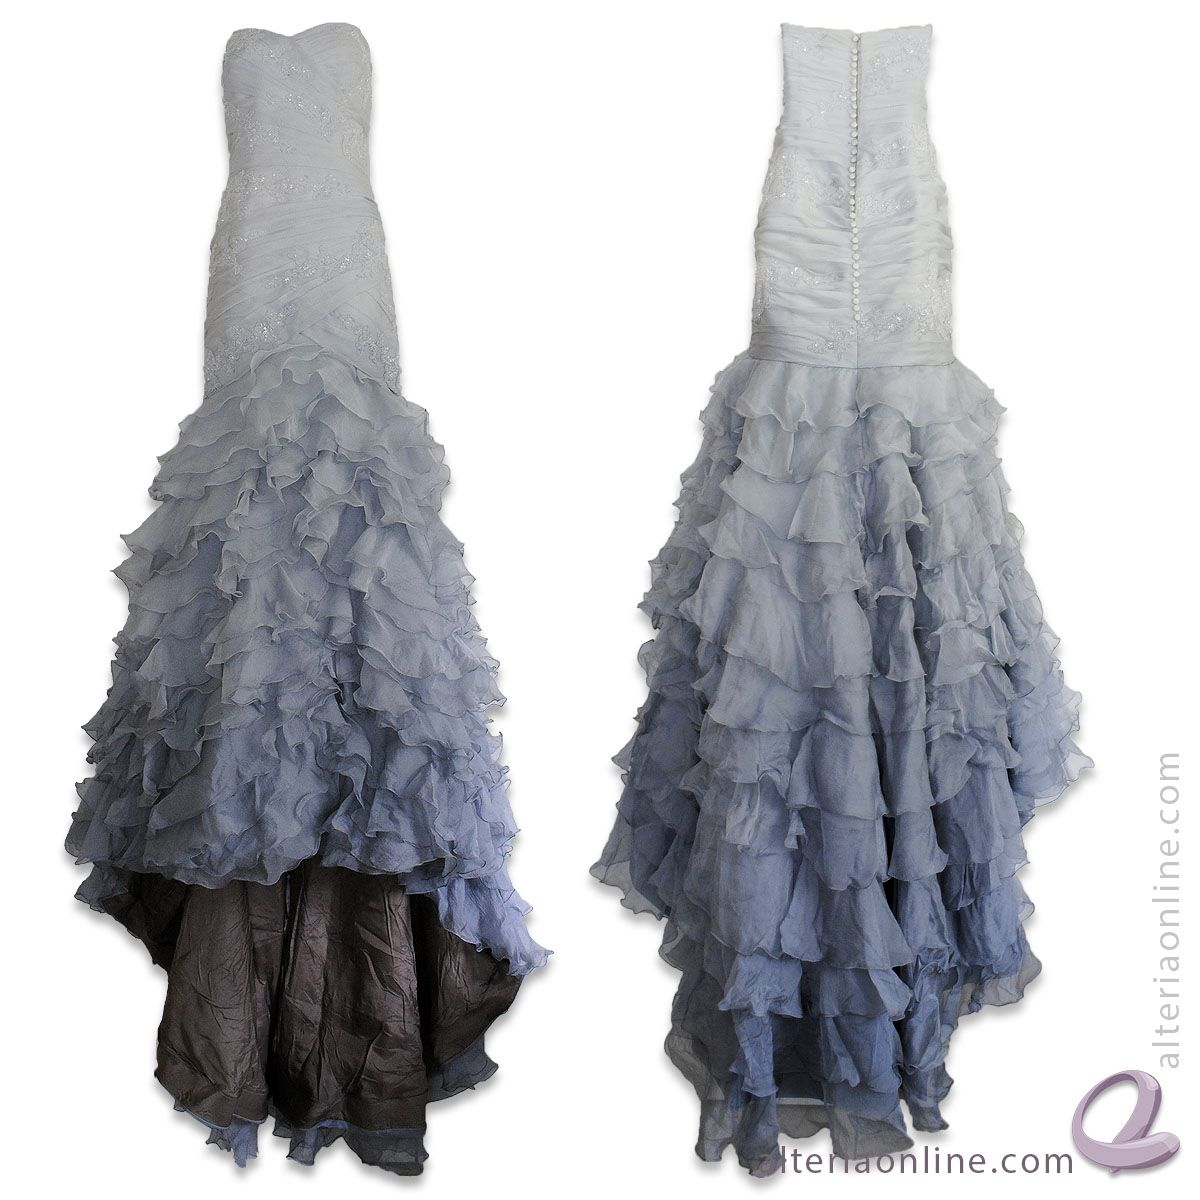 Gray Ombré Wedding Gown Hand Dyed by Alteria www.AlteriaOnline.com #dressdyeing #ombre